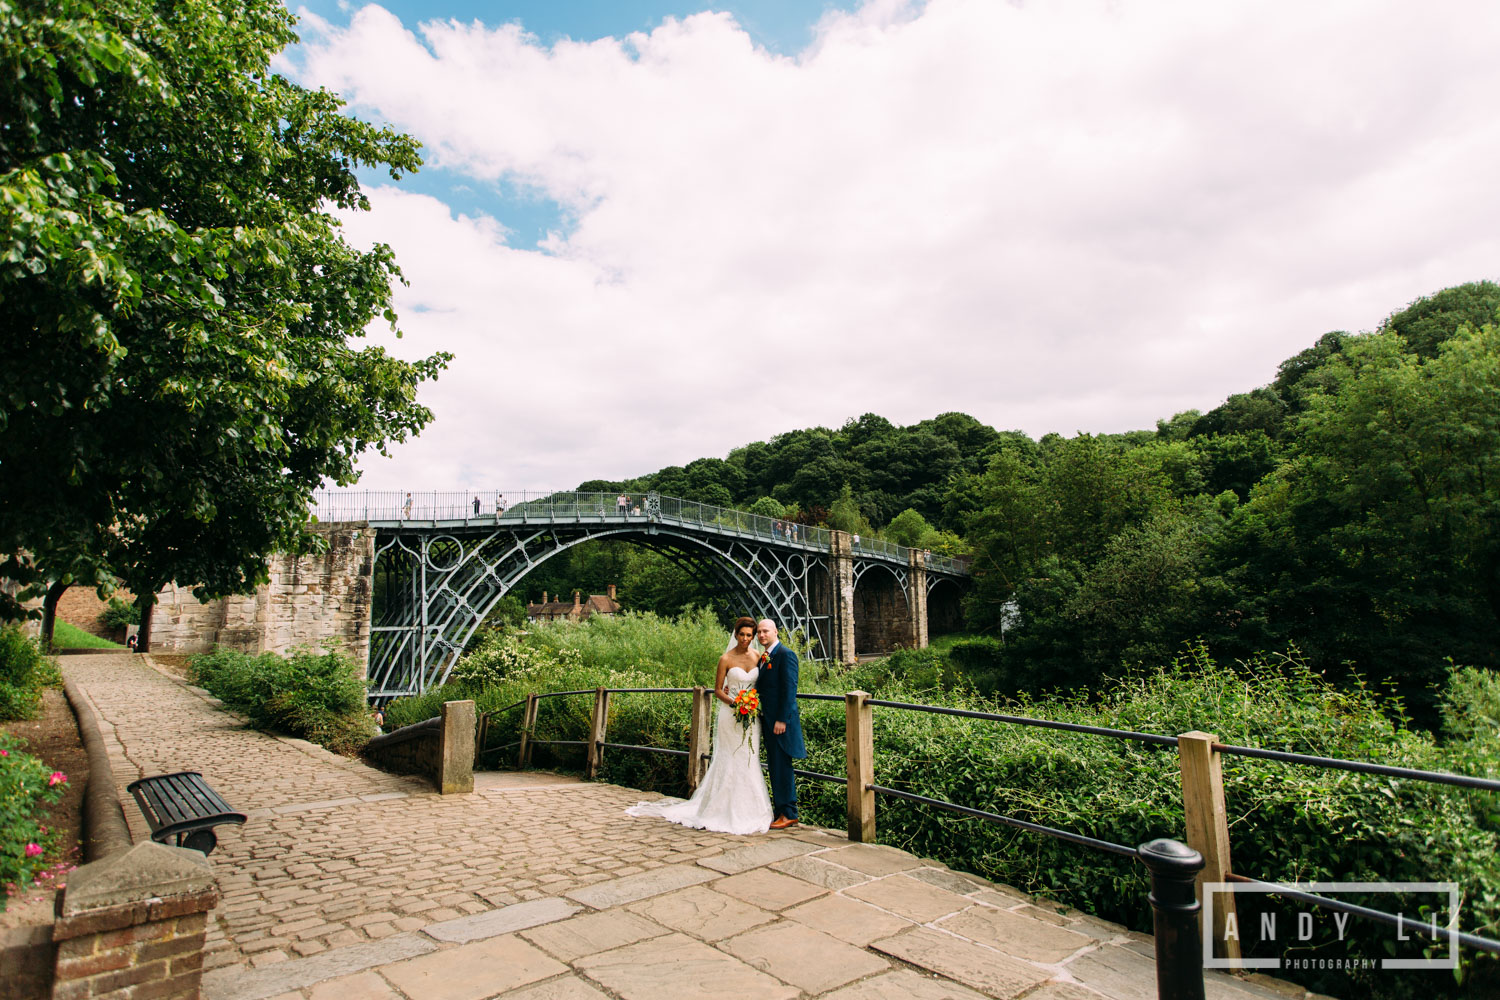 Enginuity Ironbridge Shropshire Wedding Photographer-085.jpg